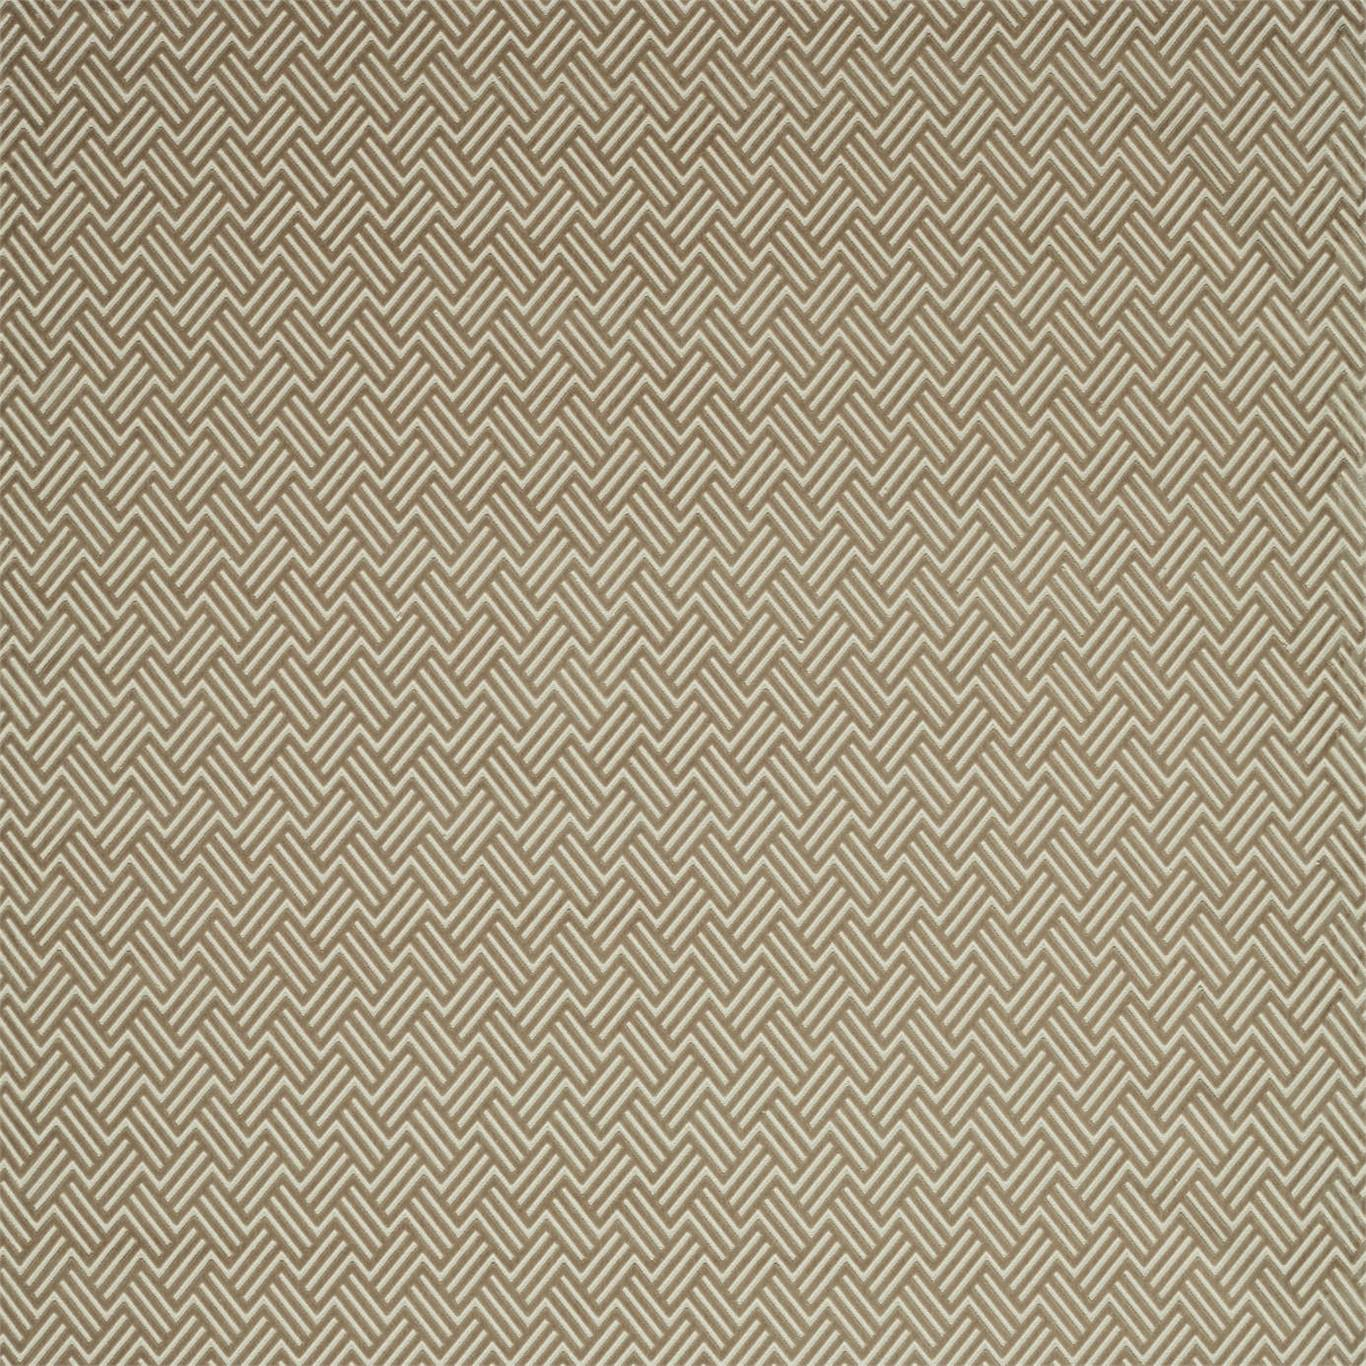 HMTC133486 Collection - Momentum 13 Fabric